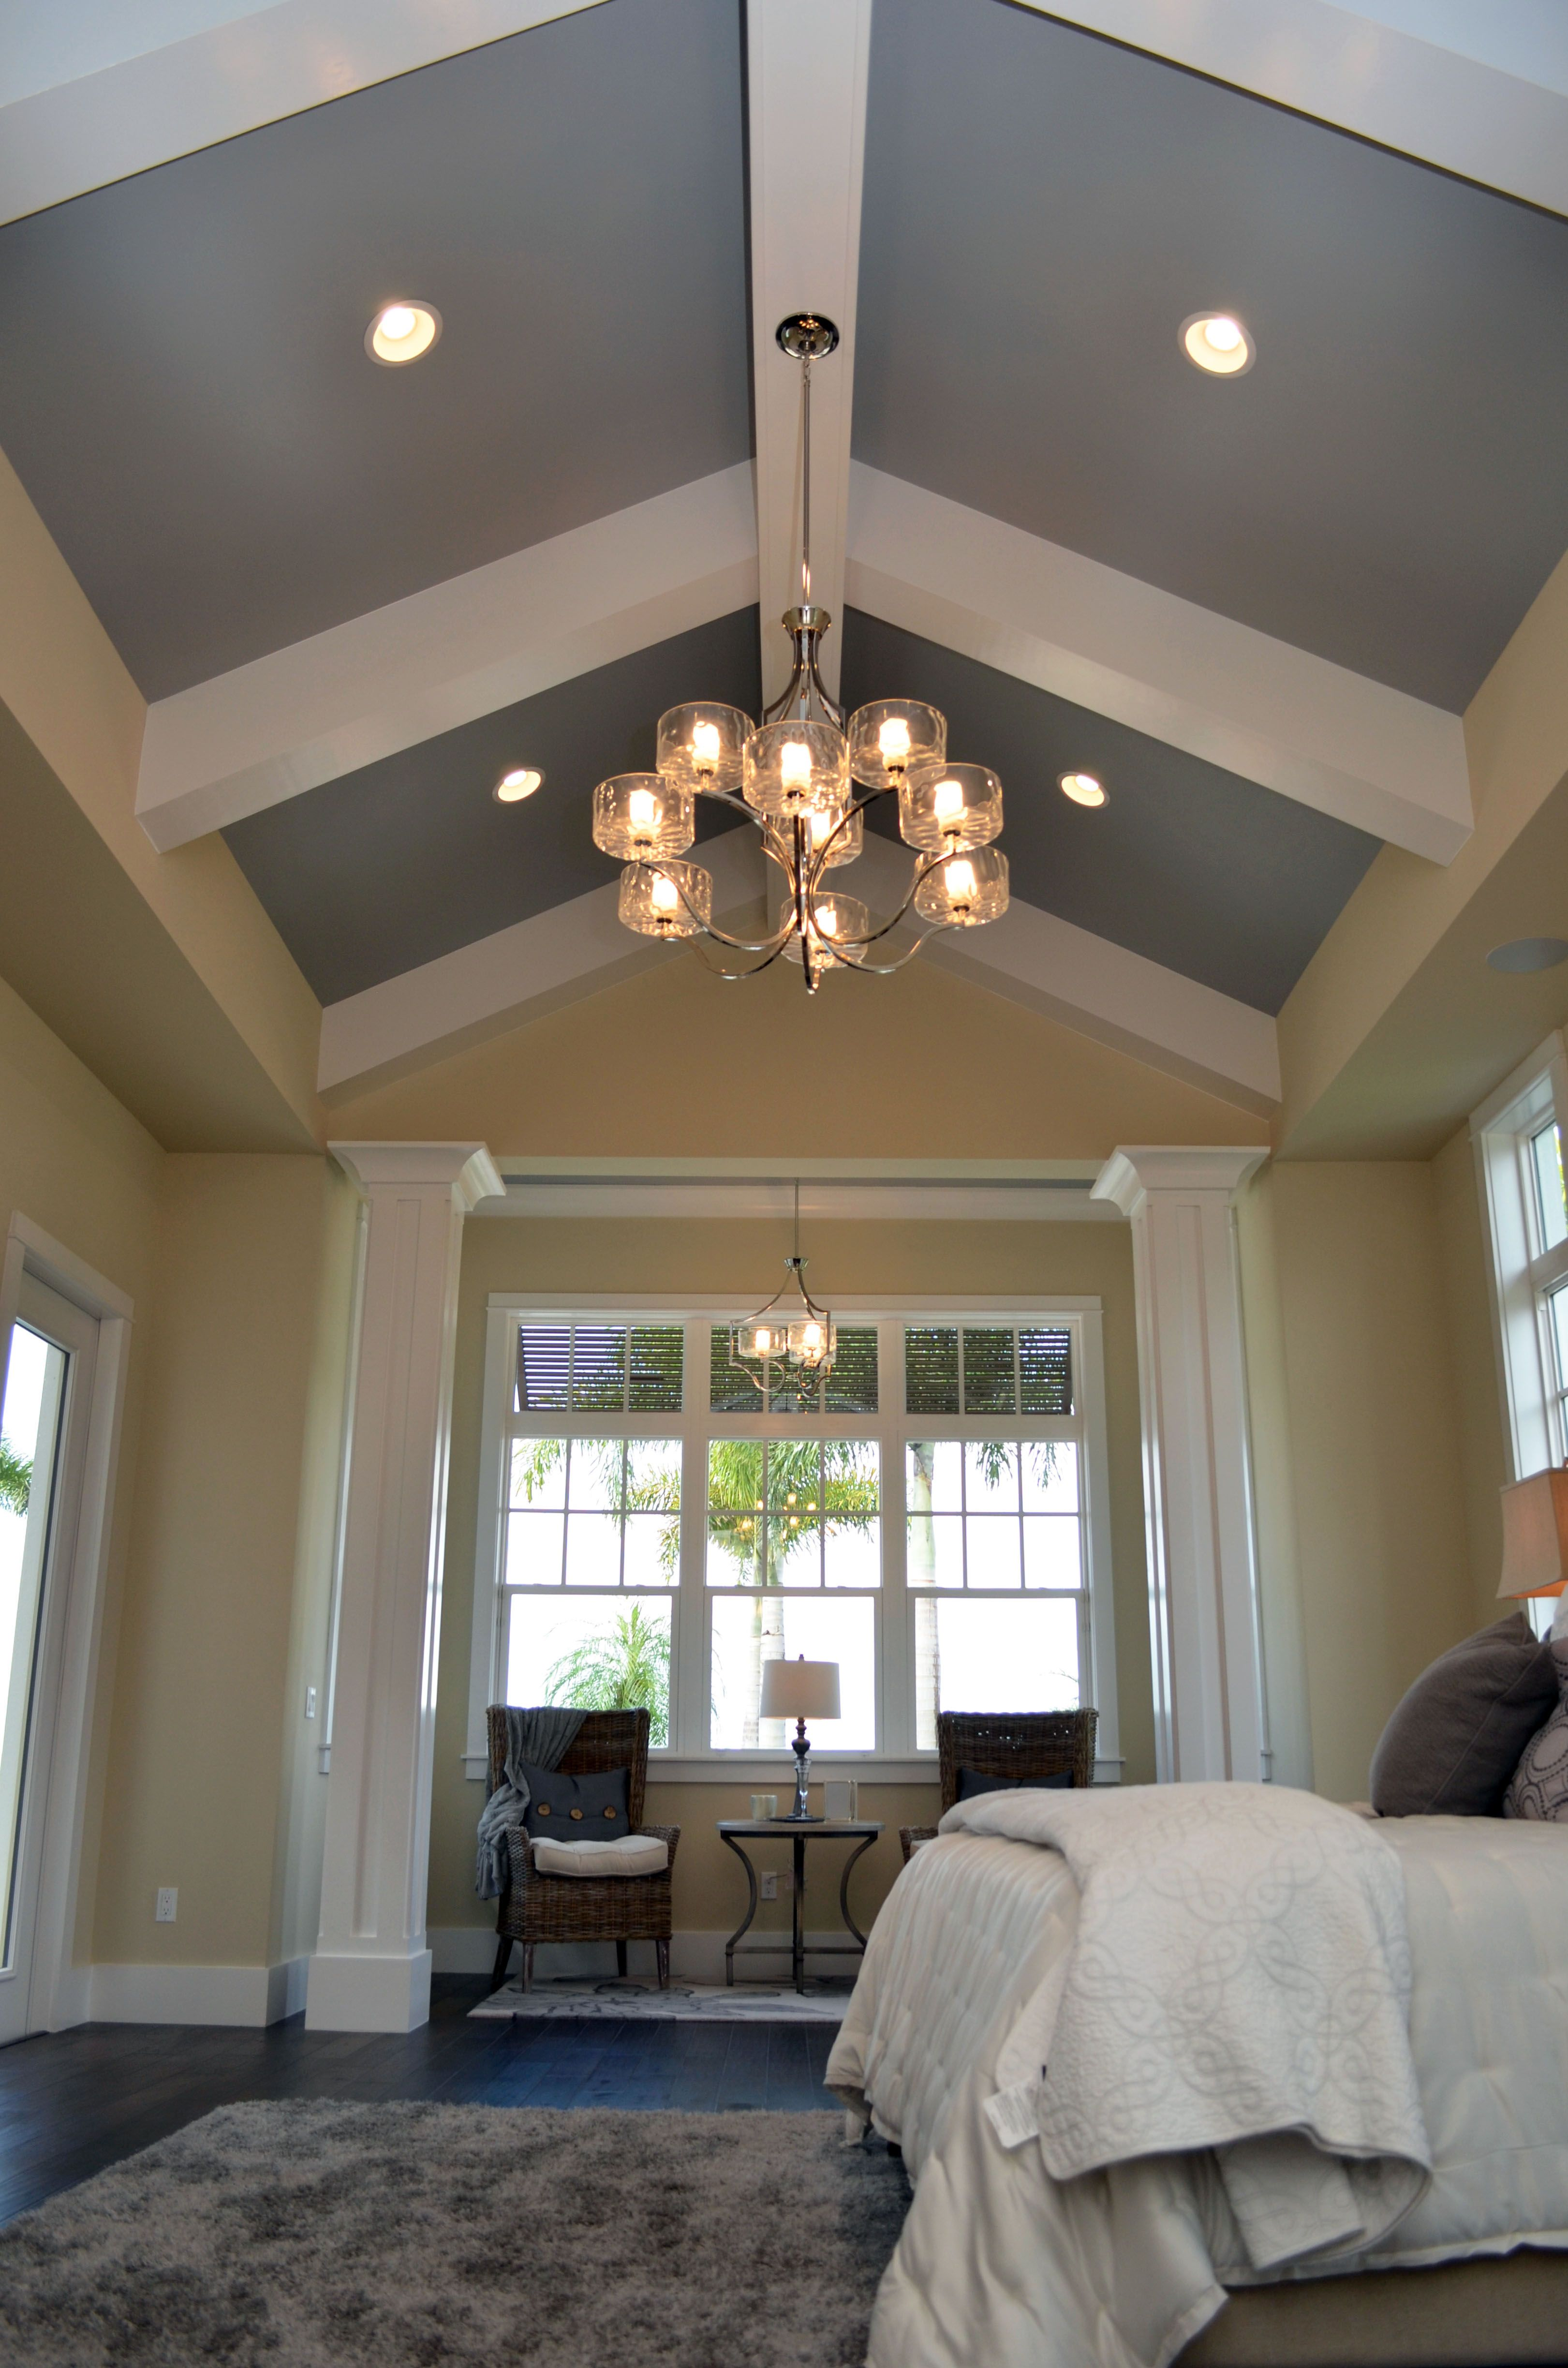 Lighting Vaulted Ceiling Vaulted Ceiling Bedroom